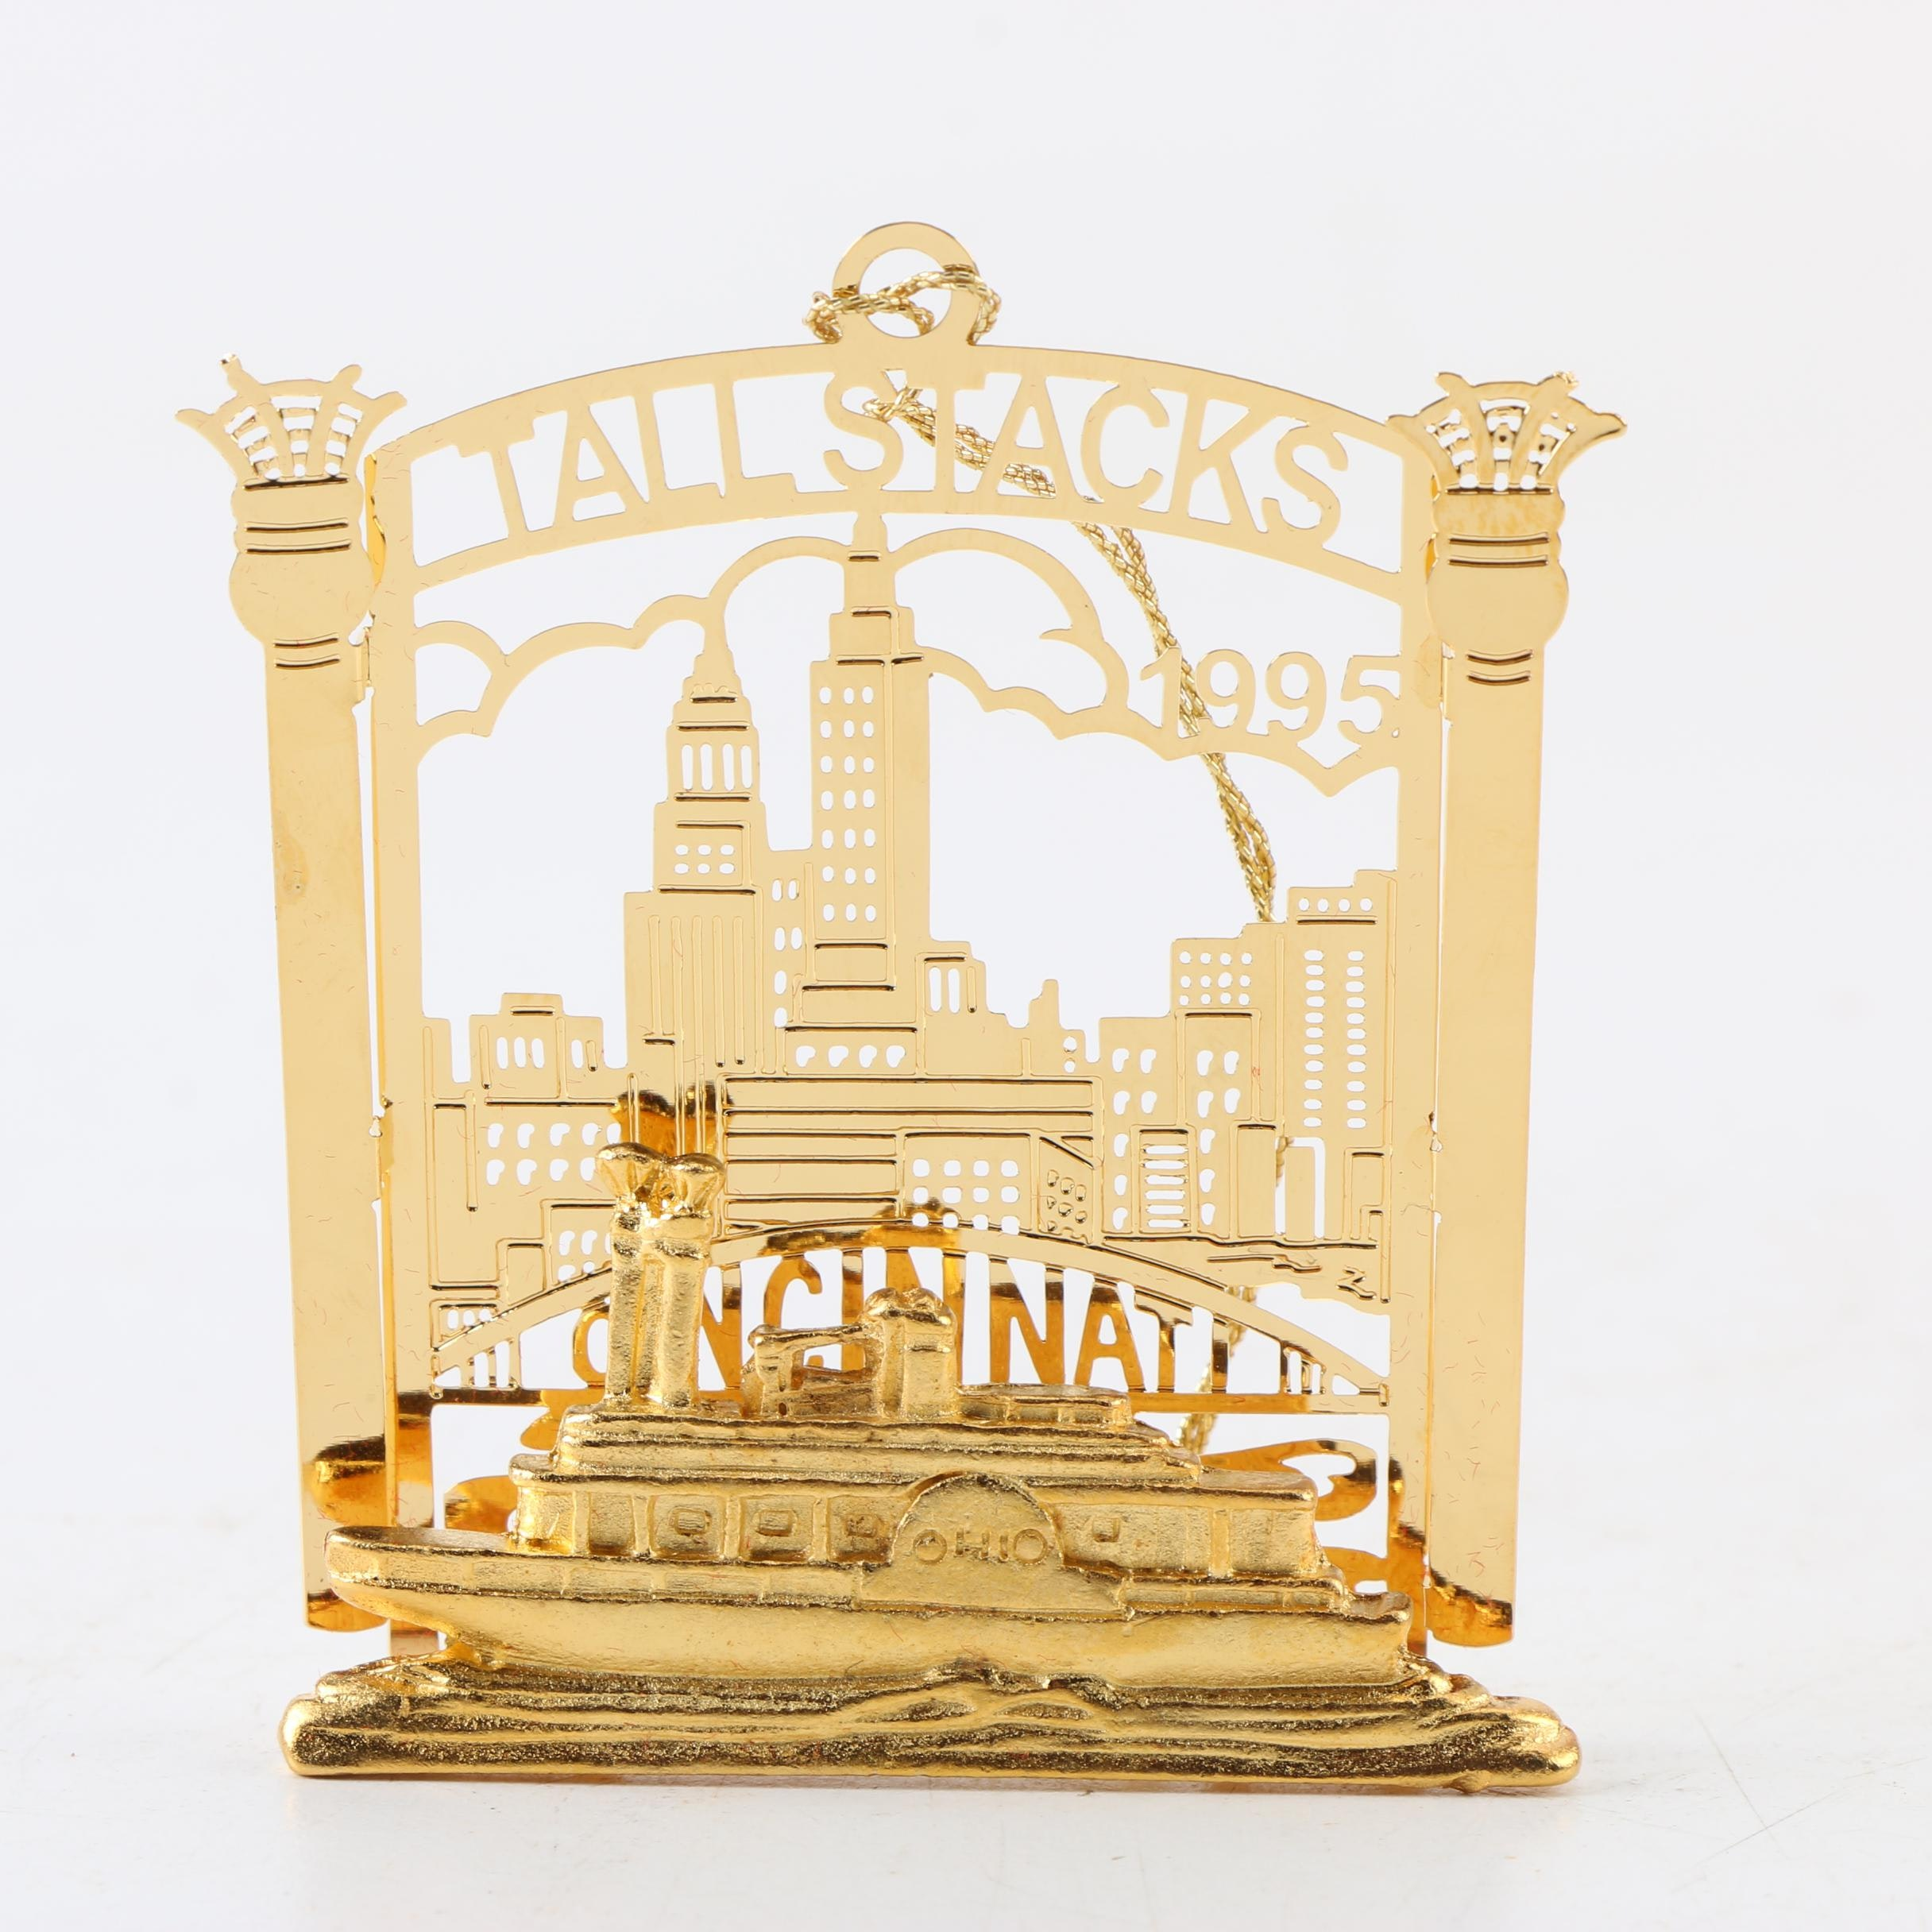 Brass Tall Stacks Riverboat Holiday Ornament